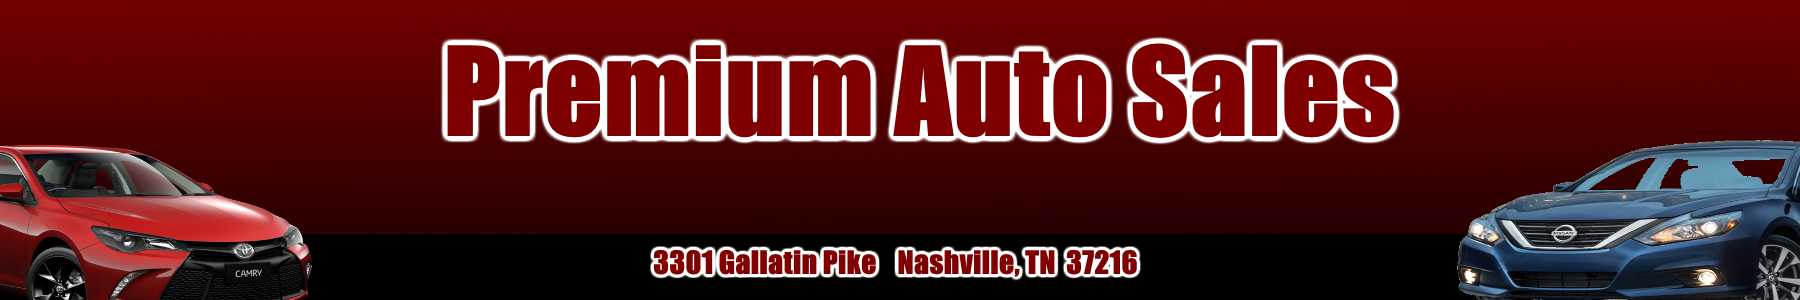 Premium Auto Sales LLC a Quality Used Car Dealer